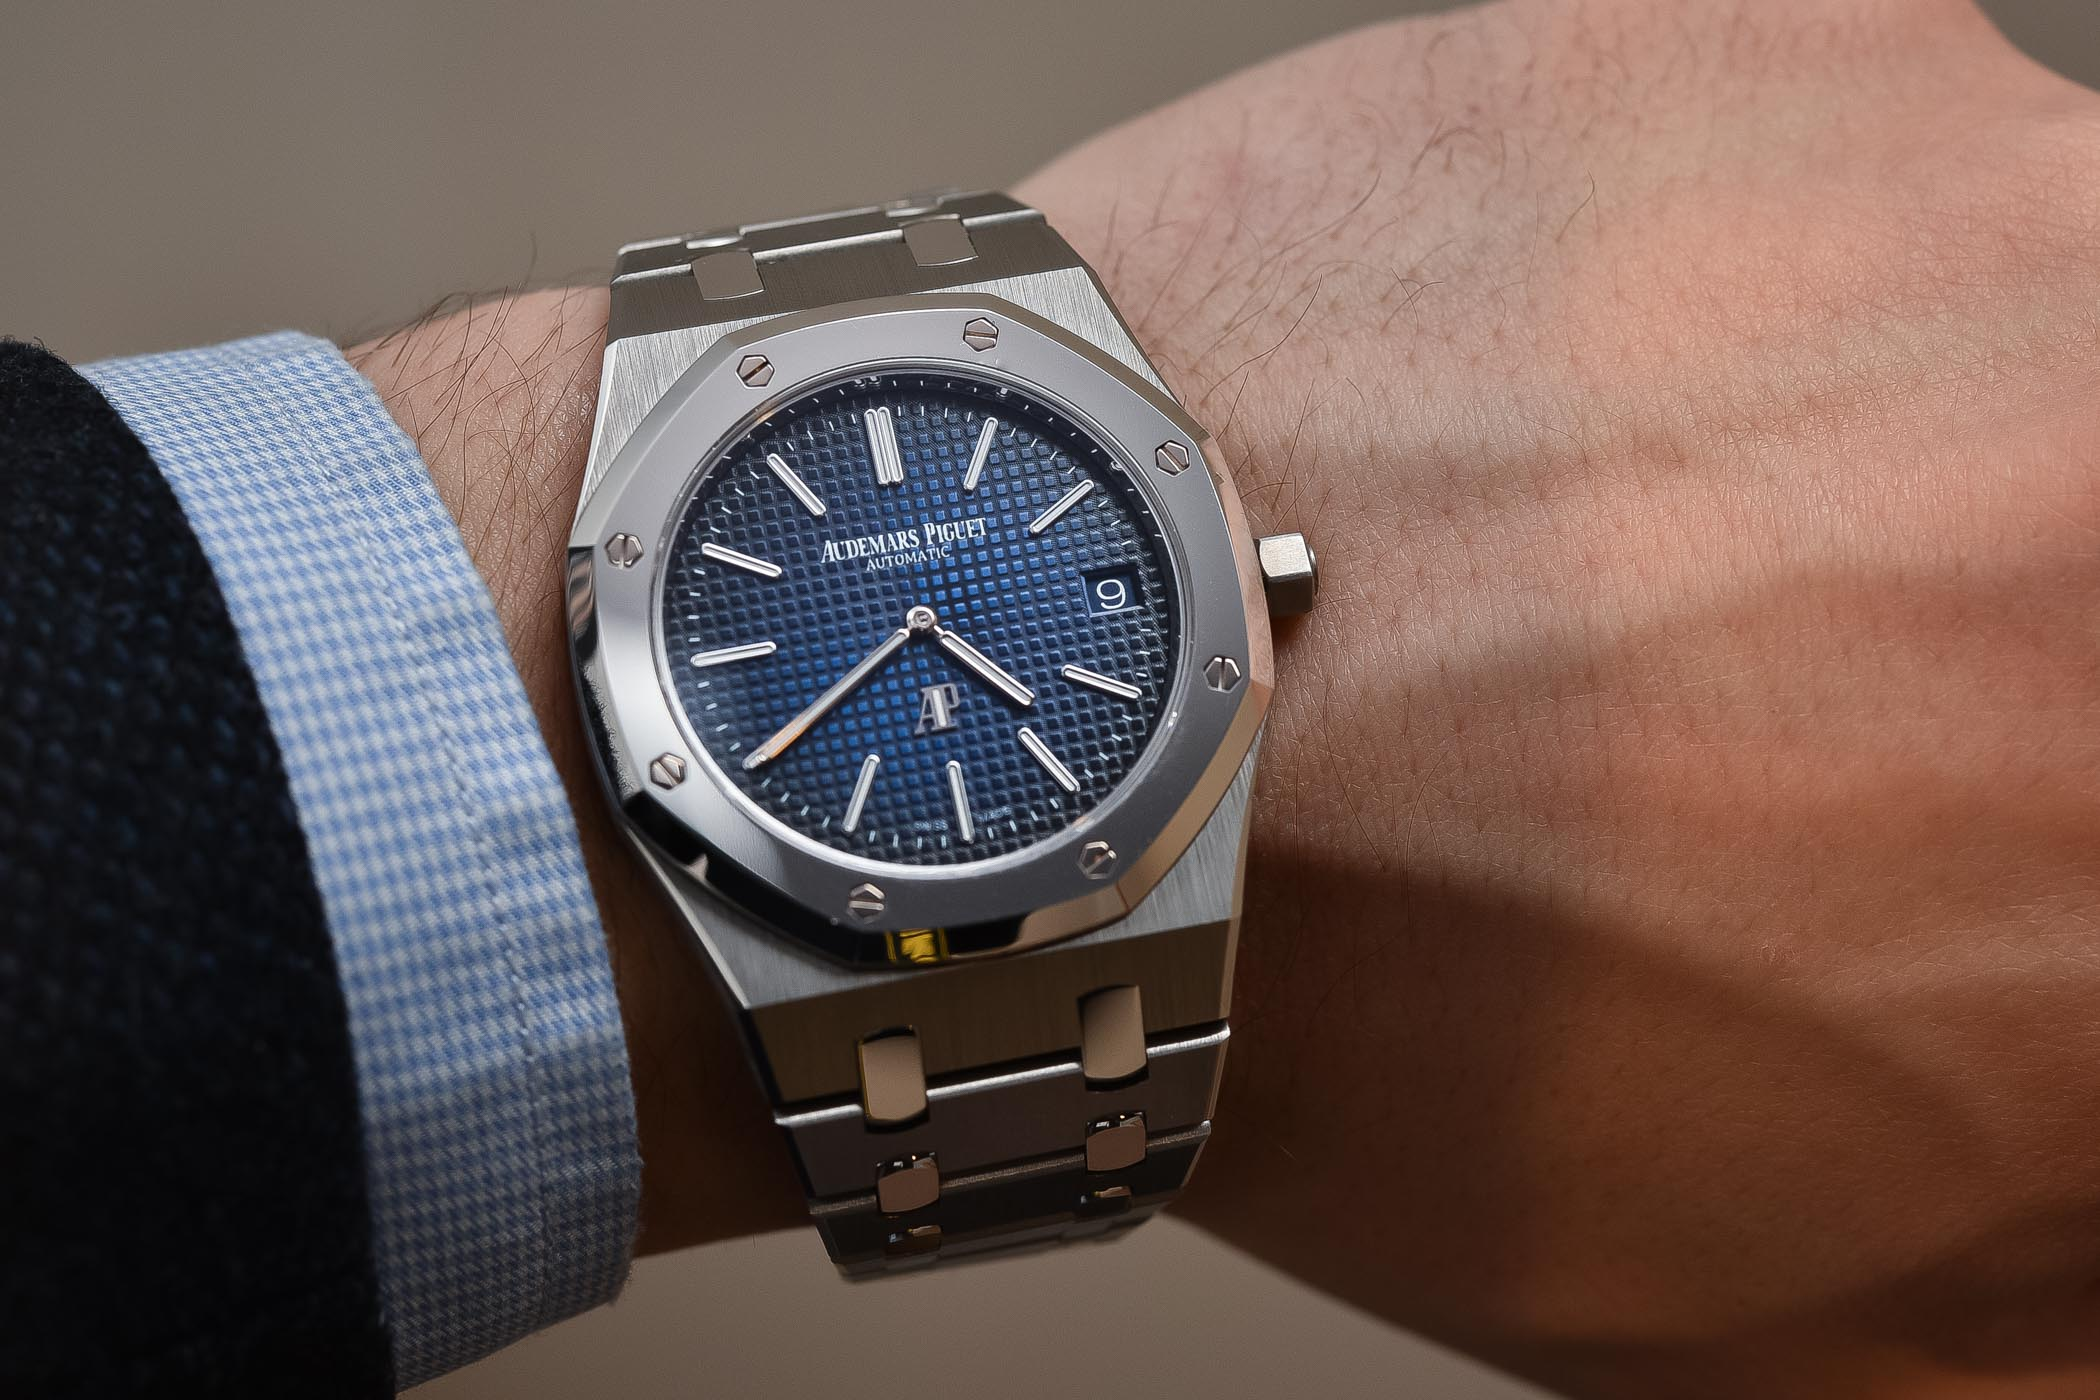 Audemars piguet royal oak jumbo extra thin 15202ip titanium platinum smoked blue dial review for Audemars watches